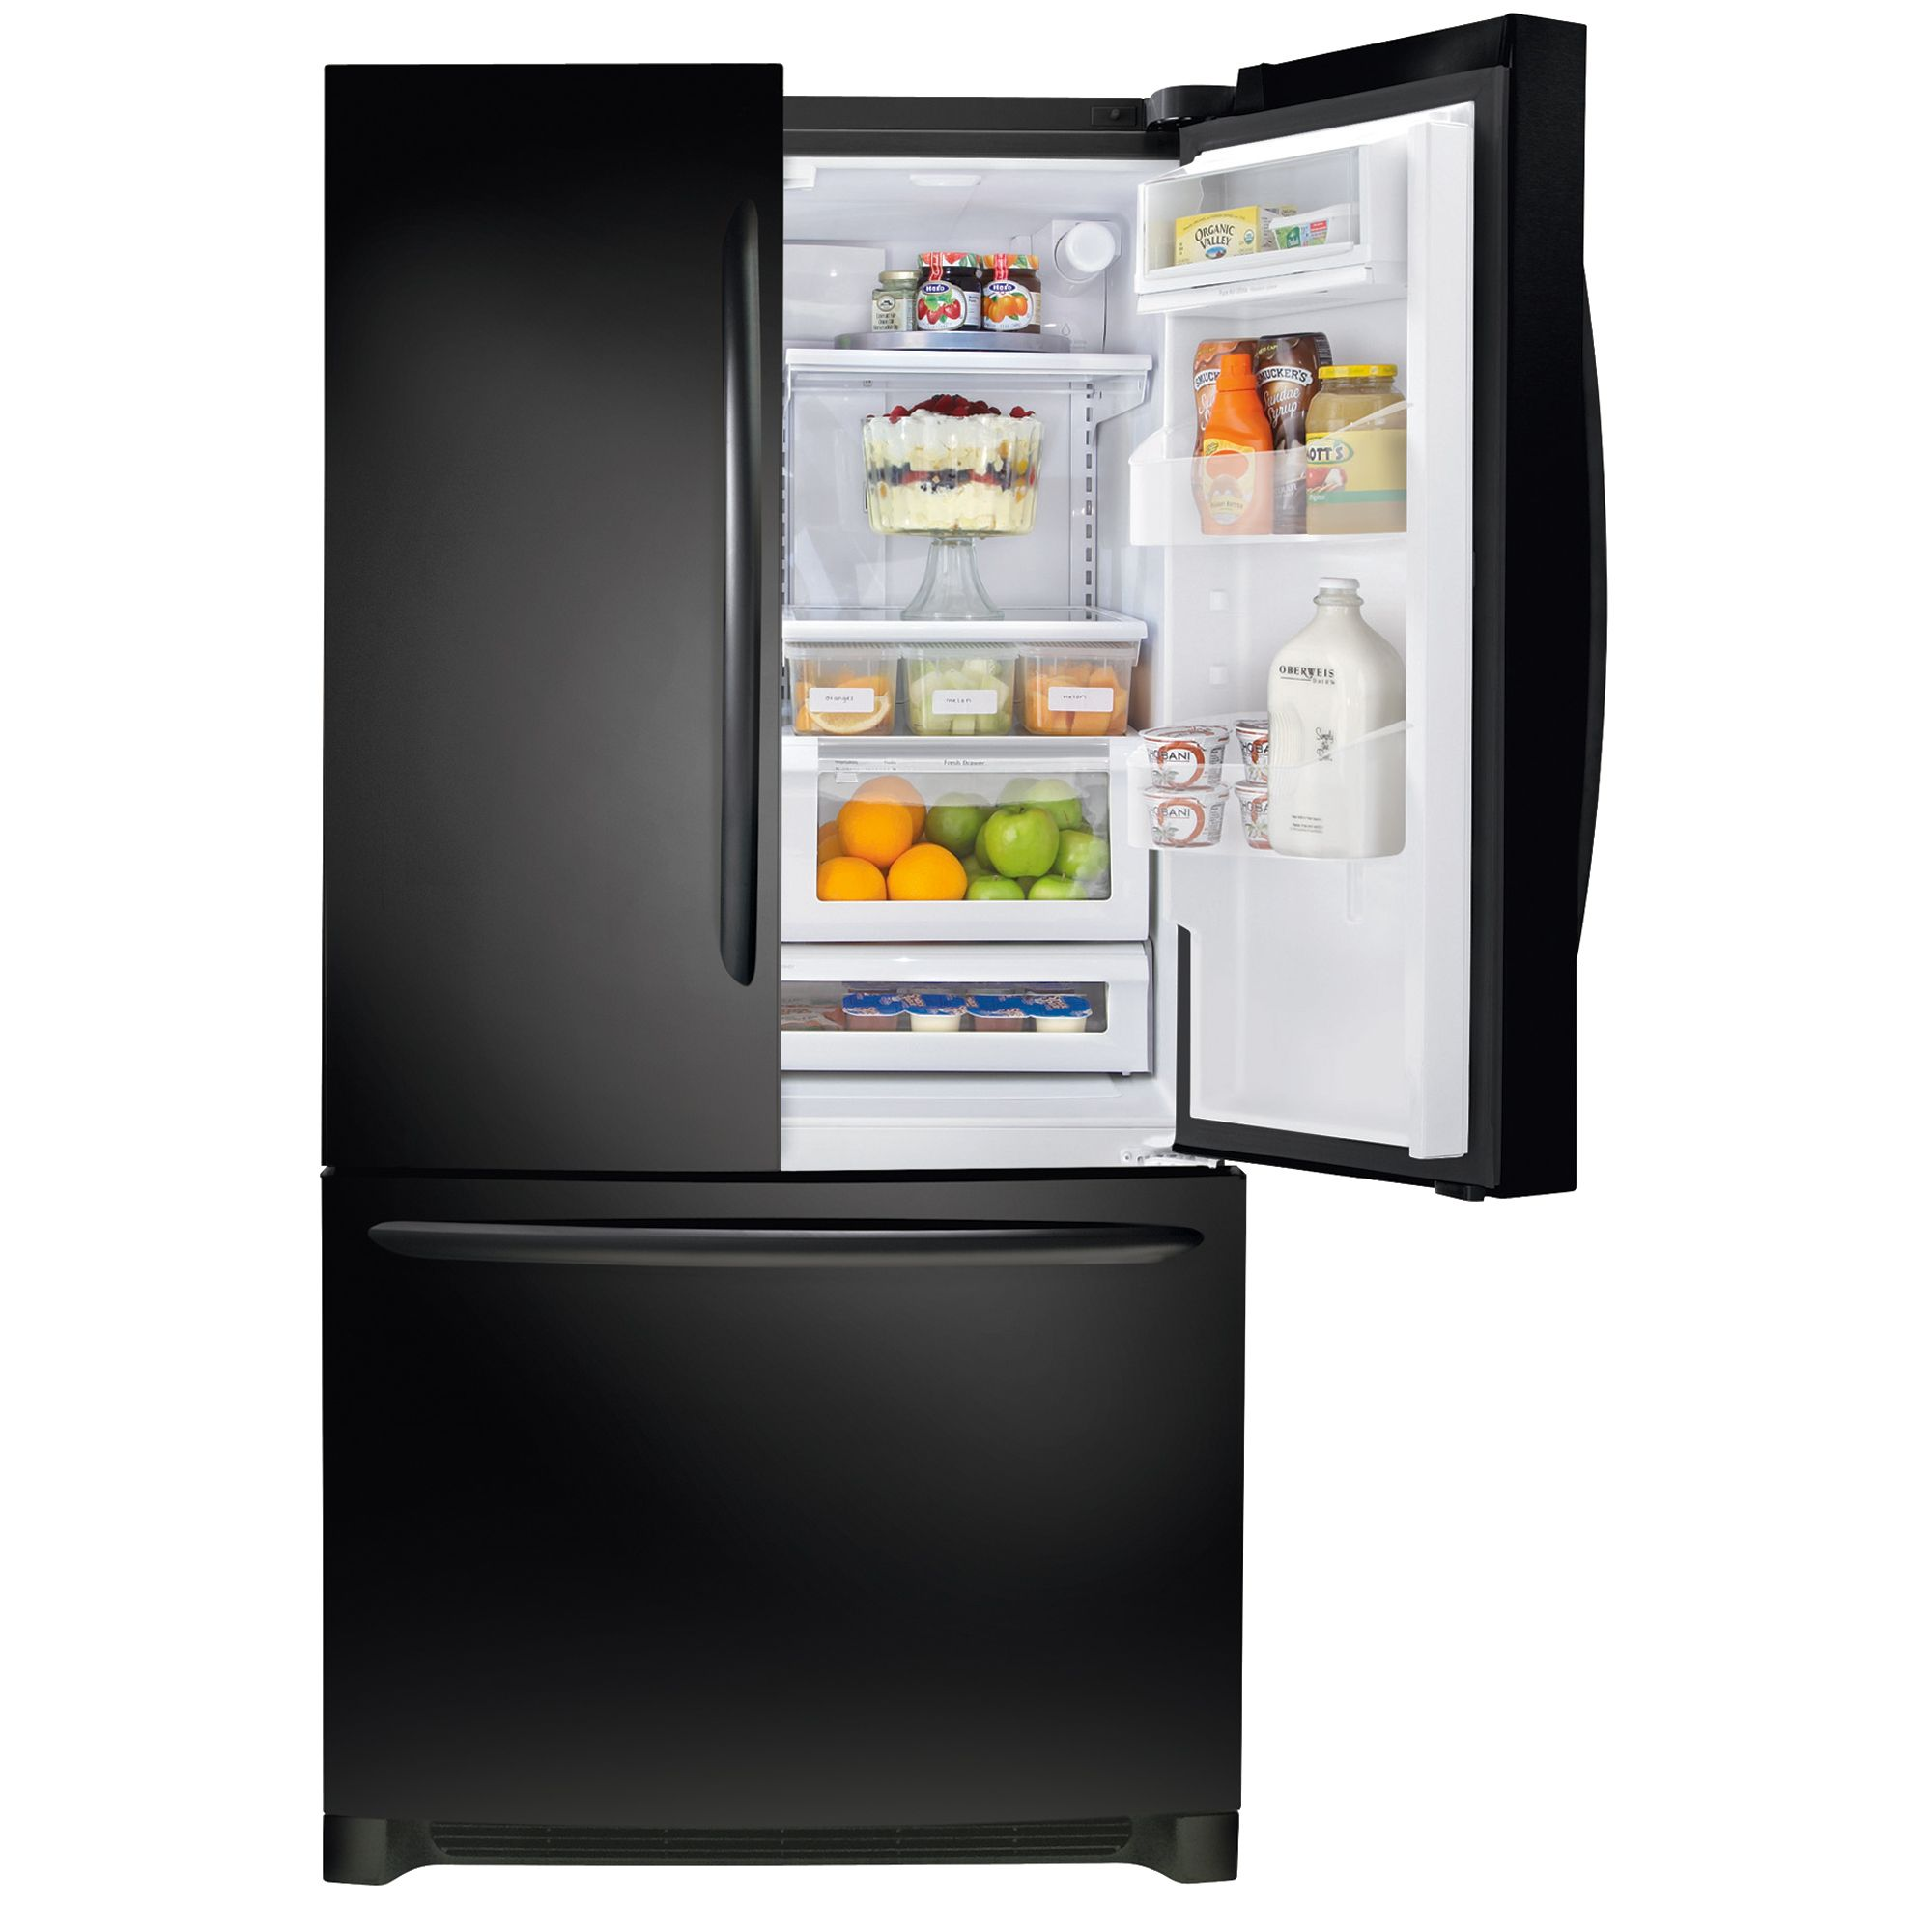 Frigidaire Gallery 25.8 cu. ft. French-Door Refrigerator - Ebony Black